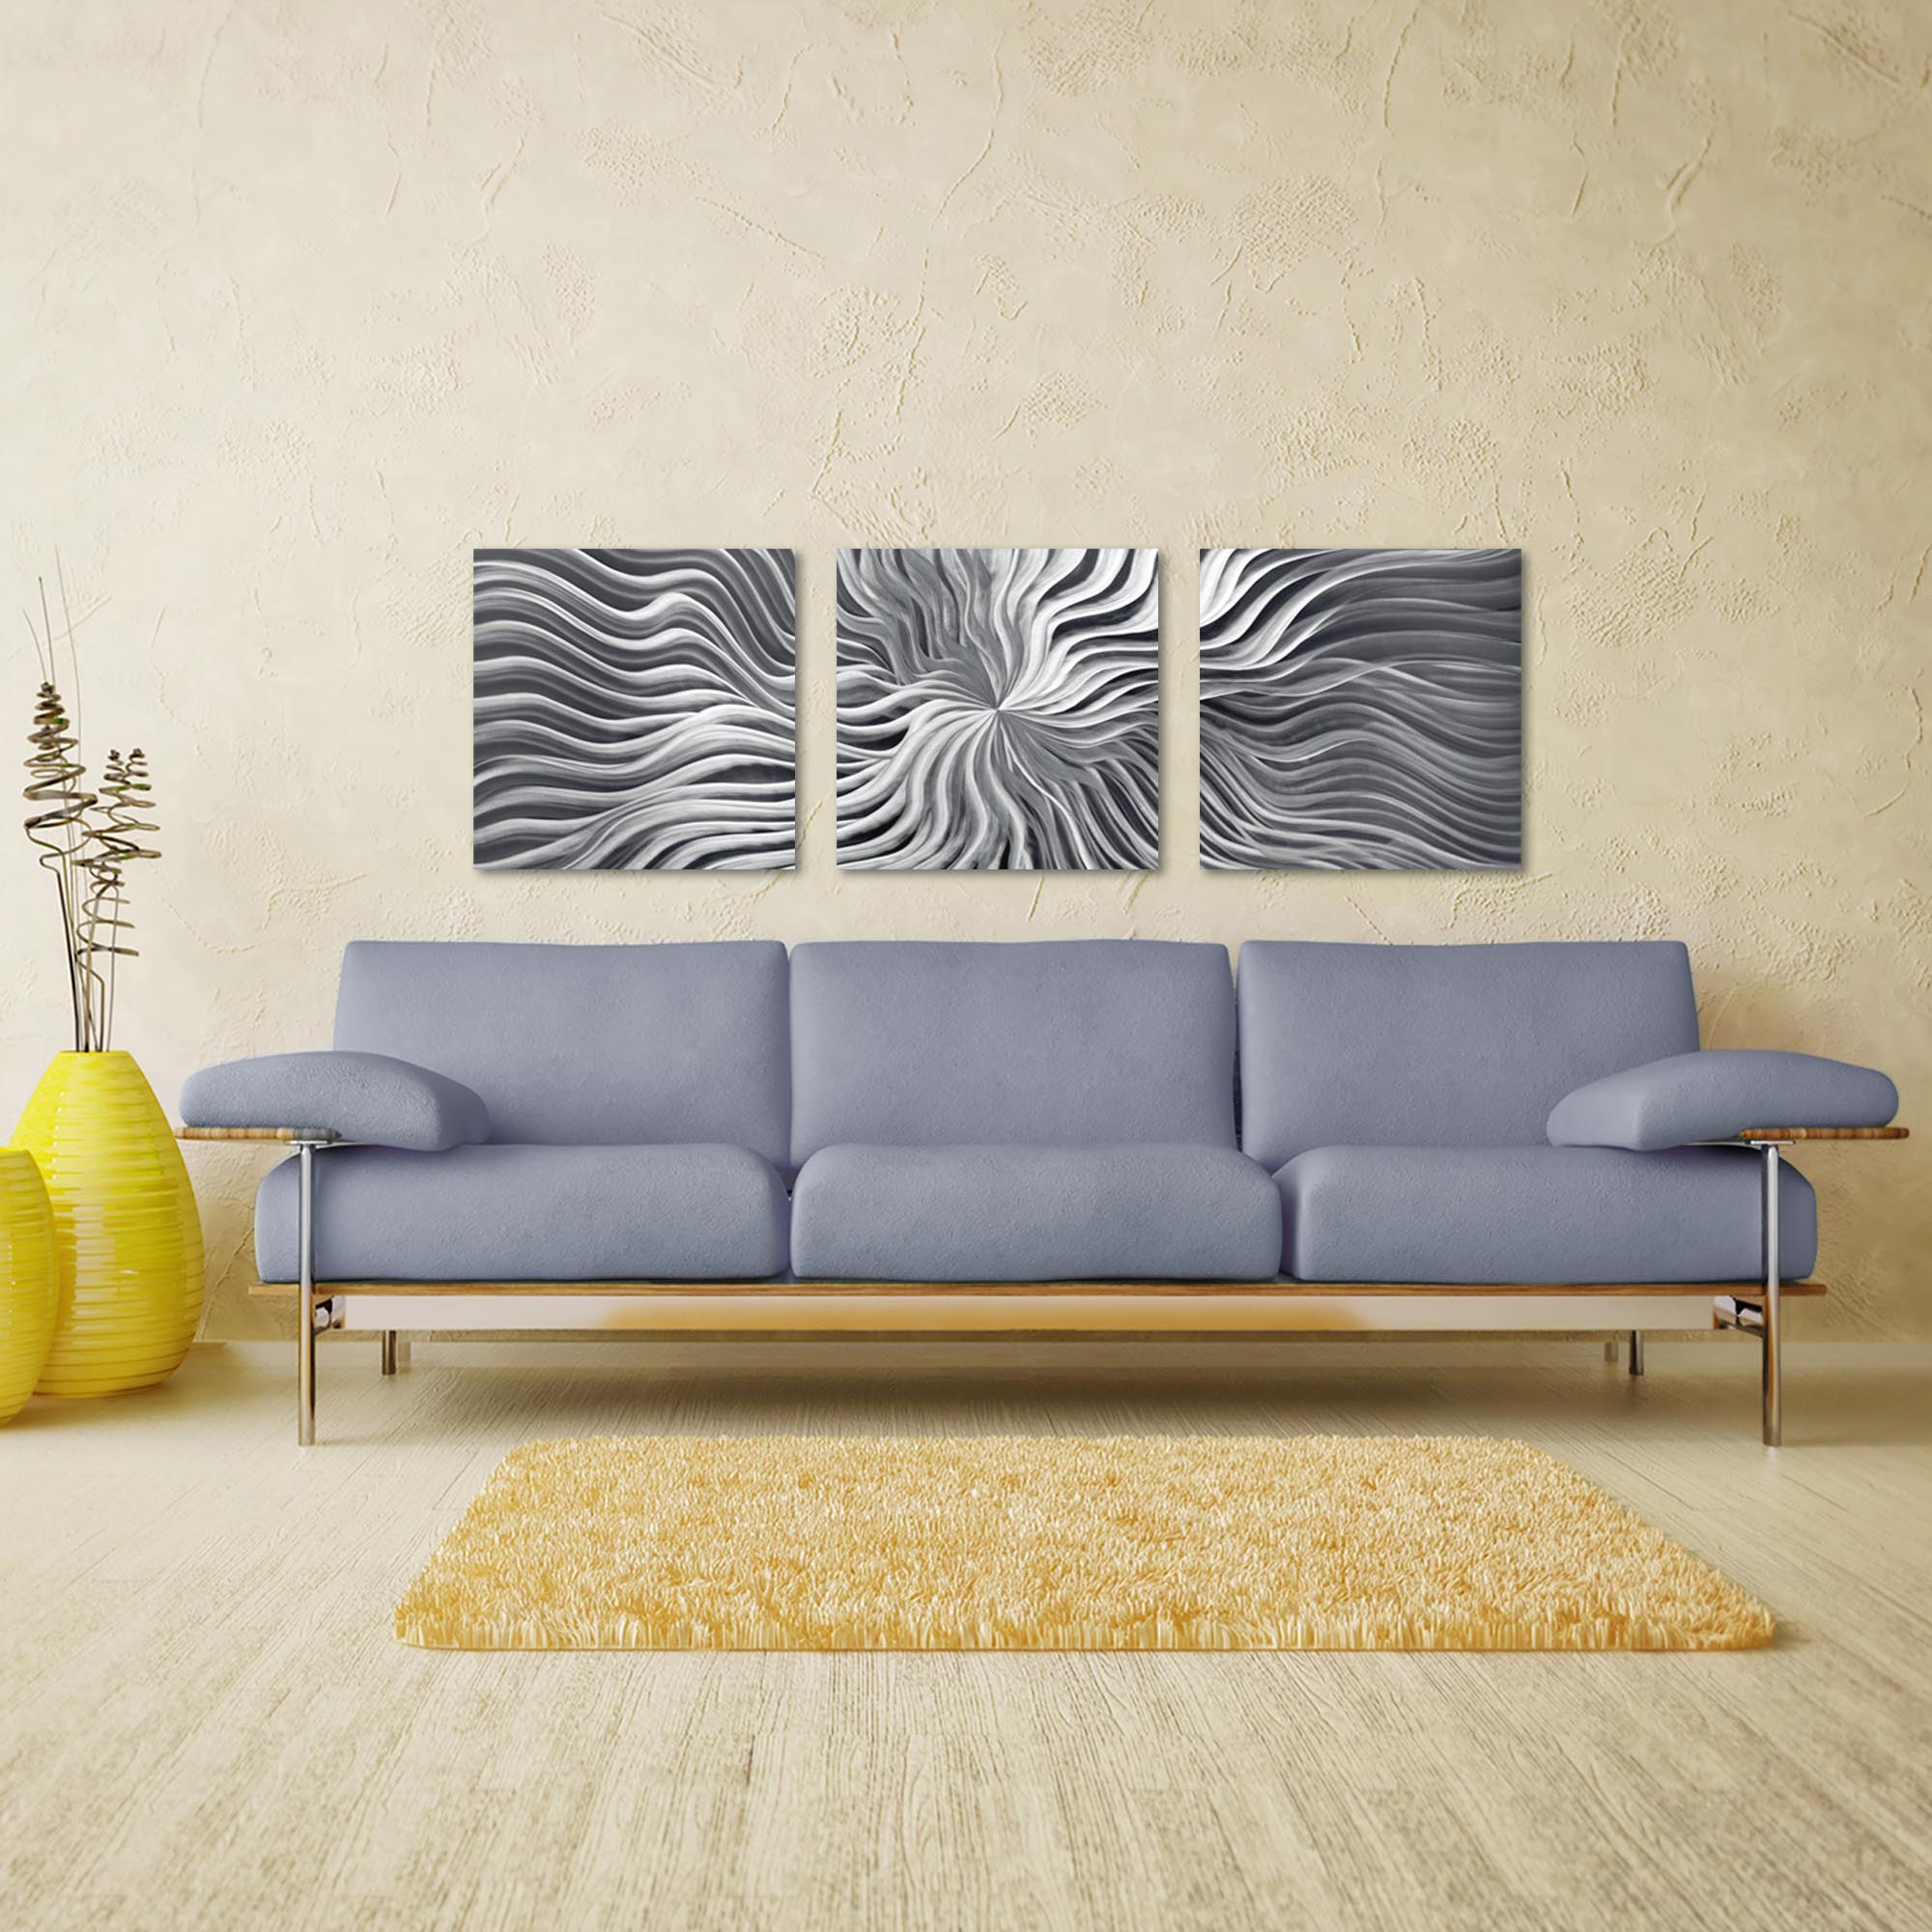 Flexure Triptych Large 70x22in. Metal or Acrylic Contemporary Decor - Lifestyle View